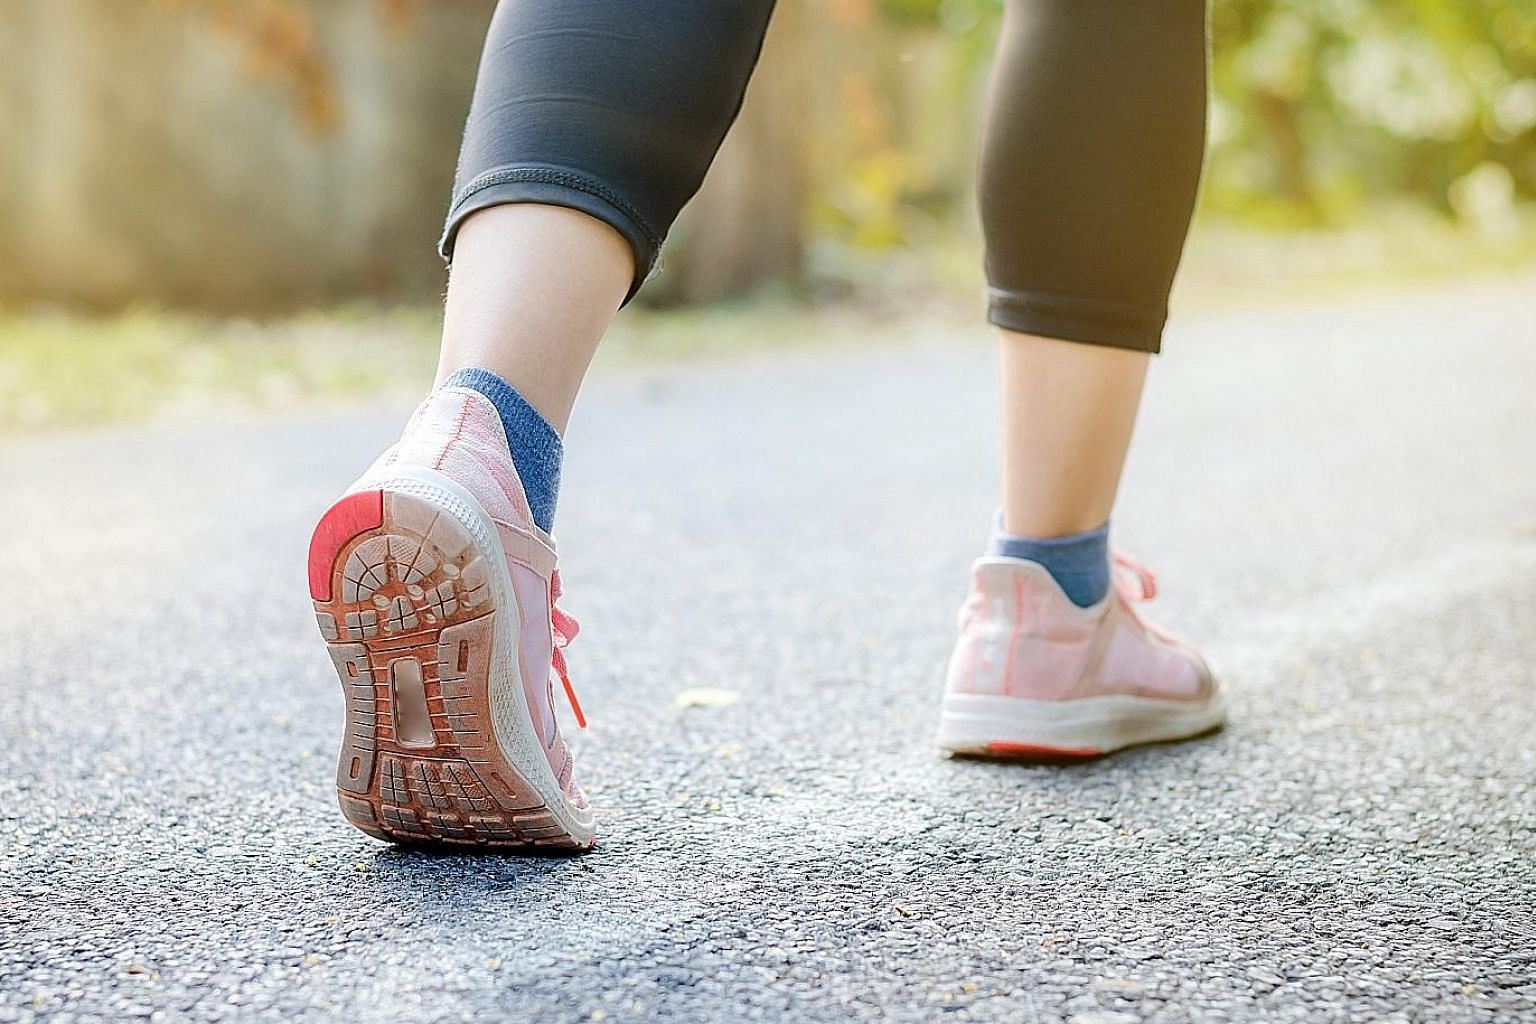 Walking can be a good form of exercise for those who are not so fit and is less intensive than running.